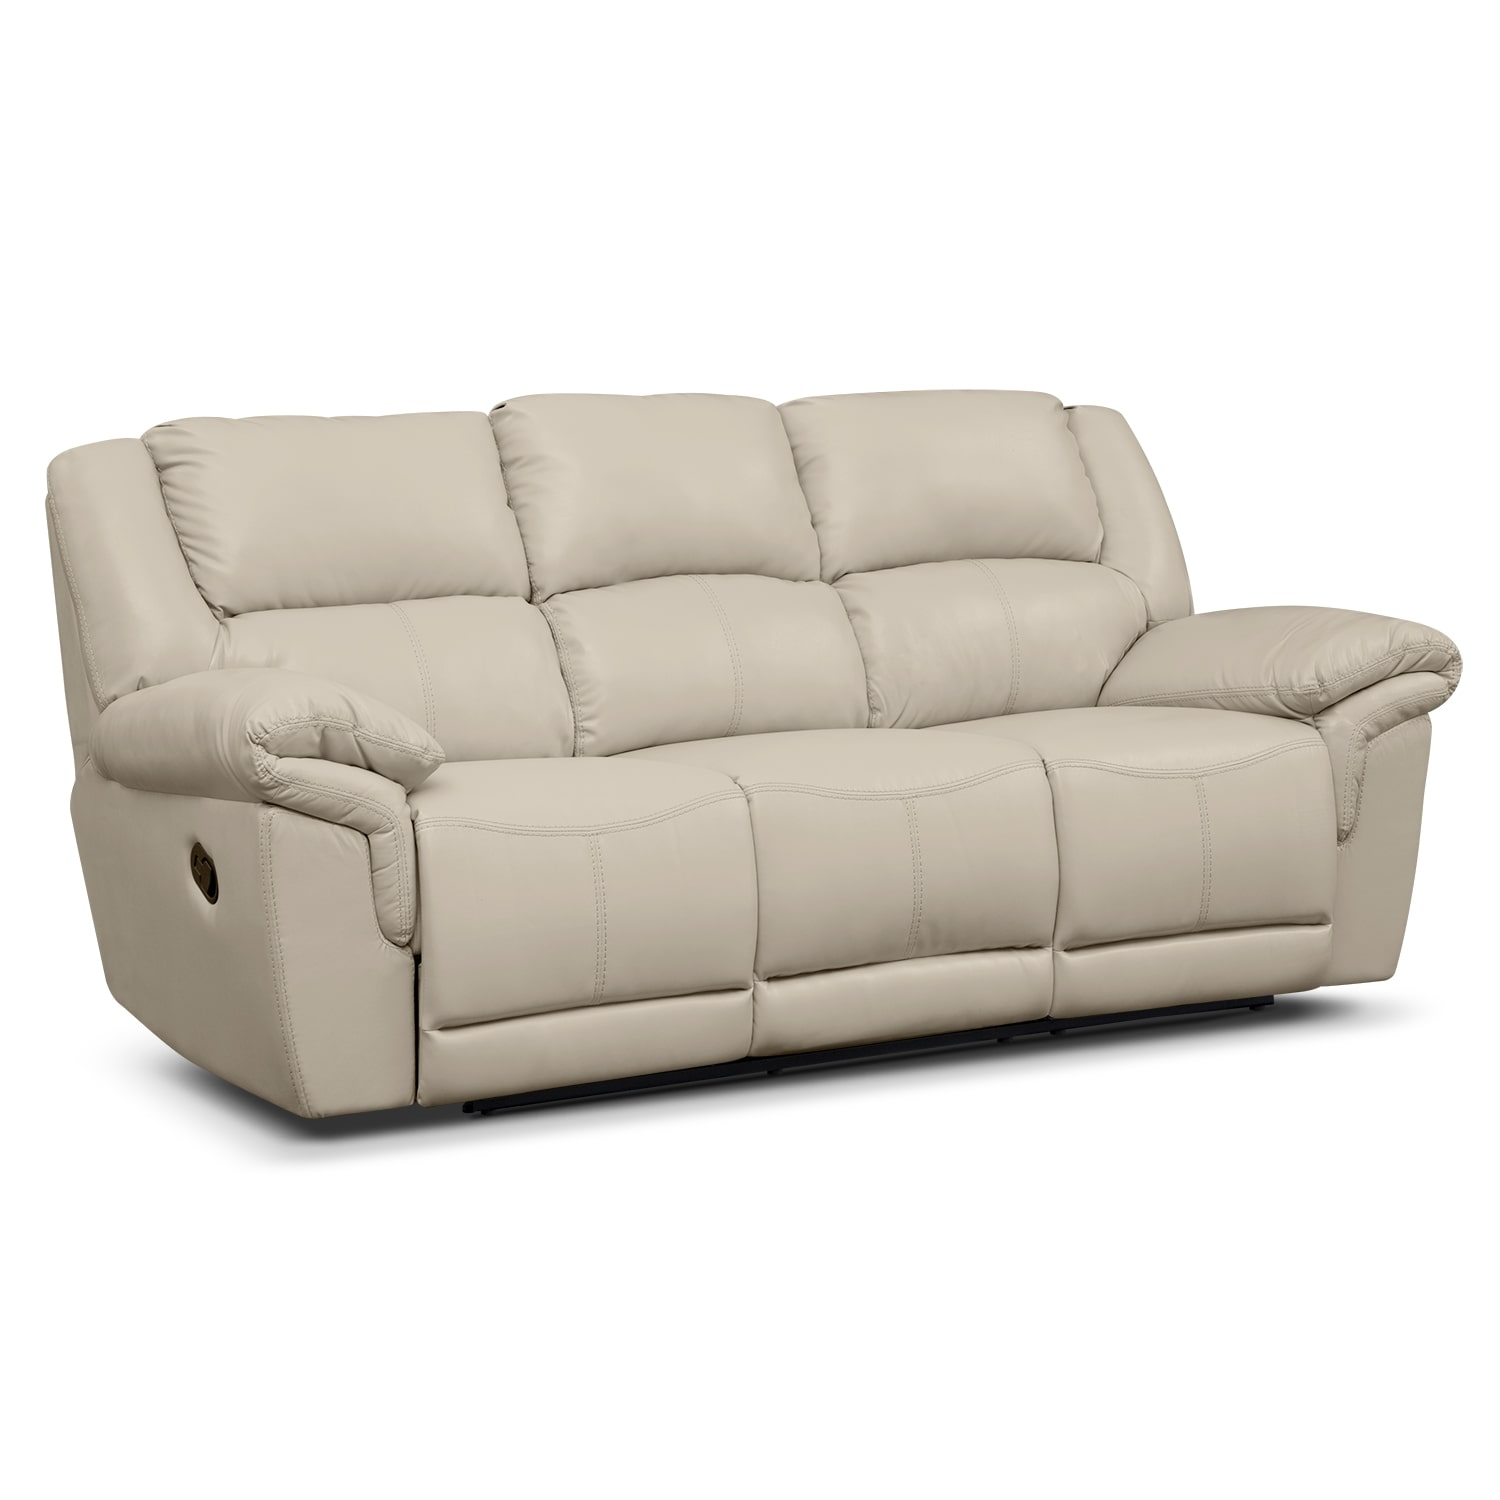 Farrell Almond Leather Dual Reclining Sofa